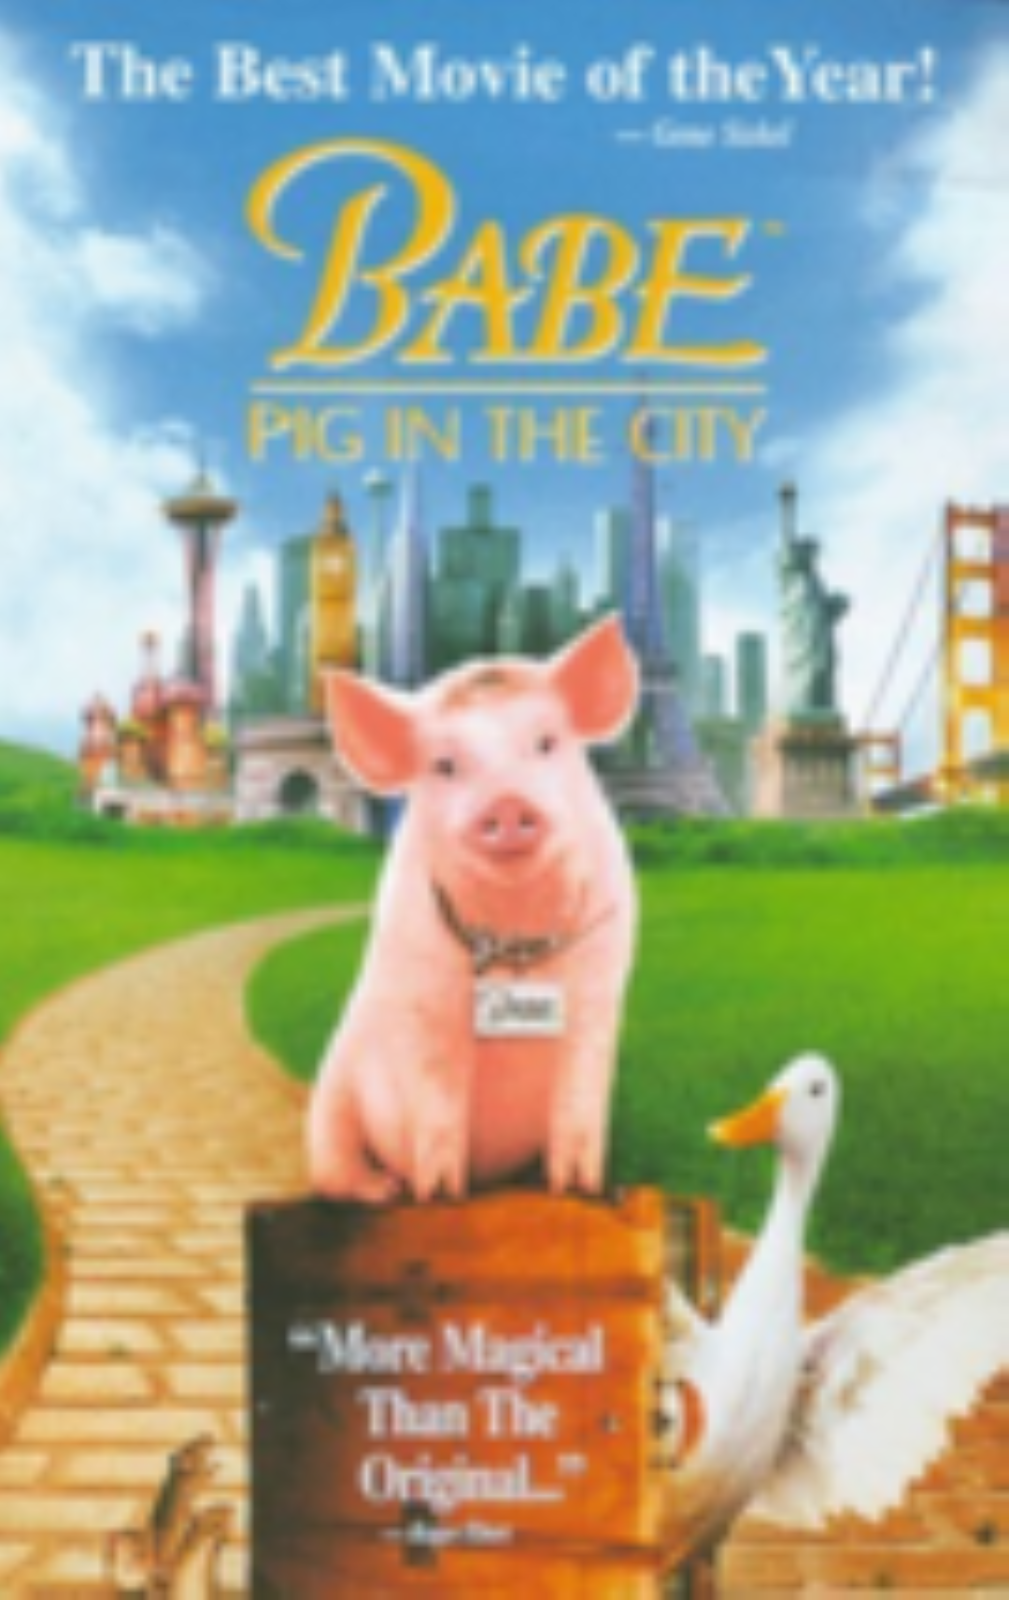 Babe - Pig in the City Vhs